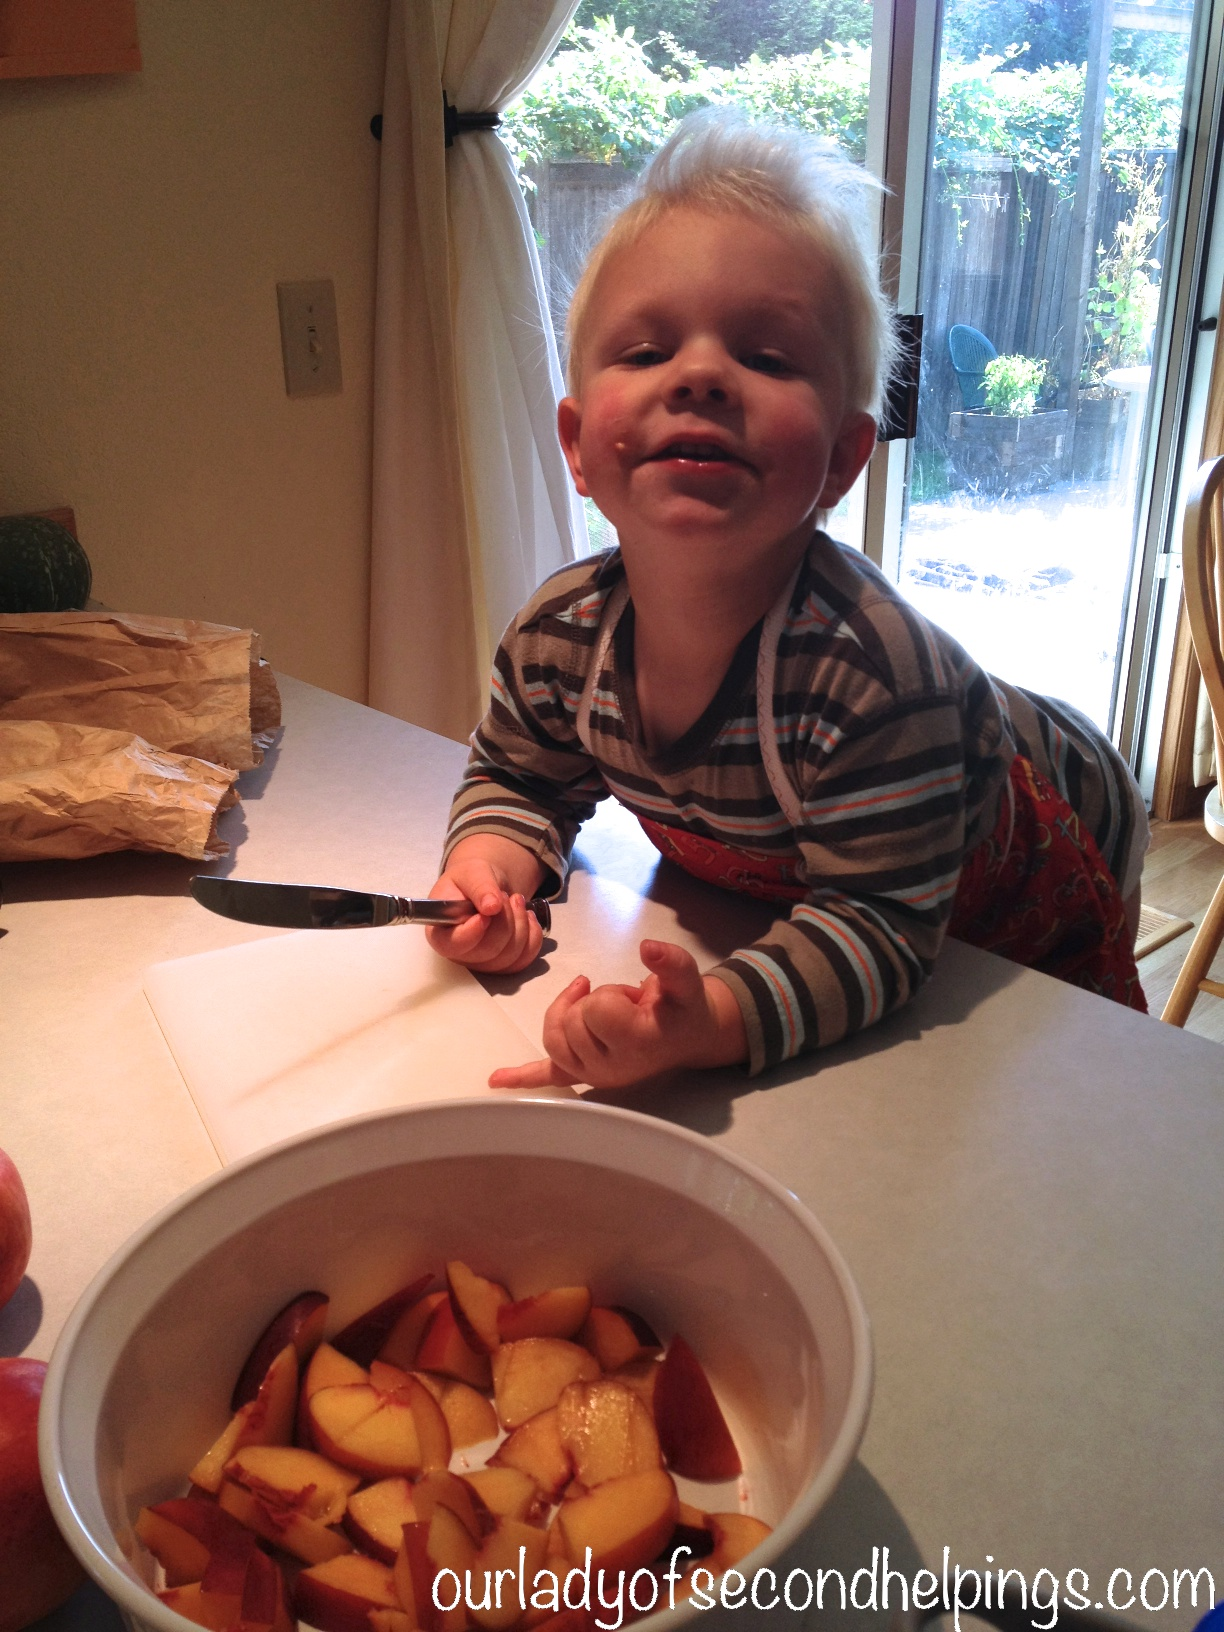 Child Helping to Cut Fruit